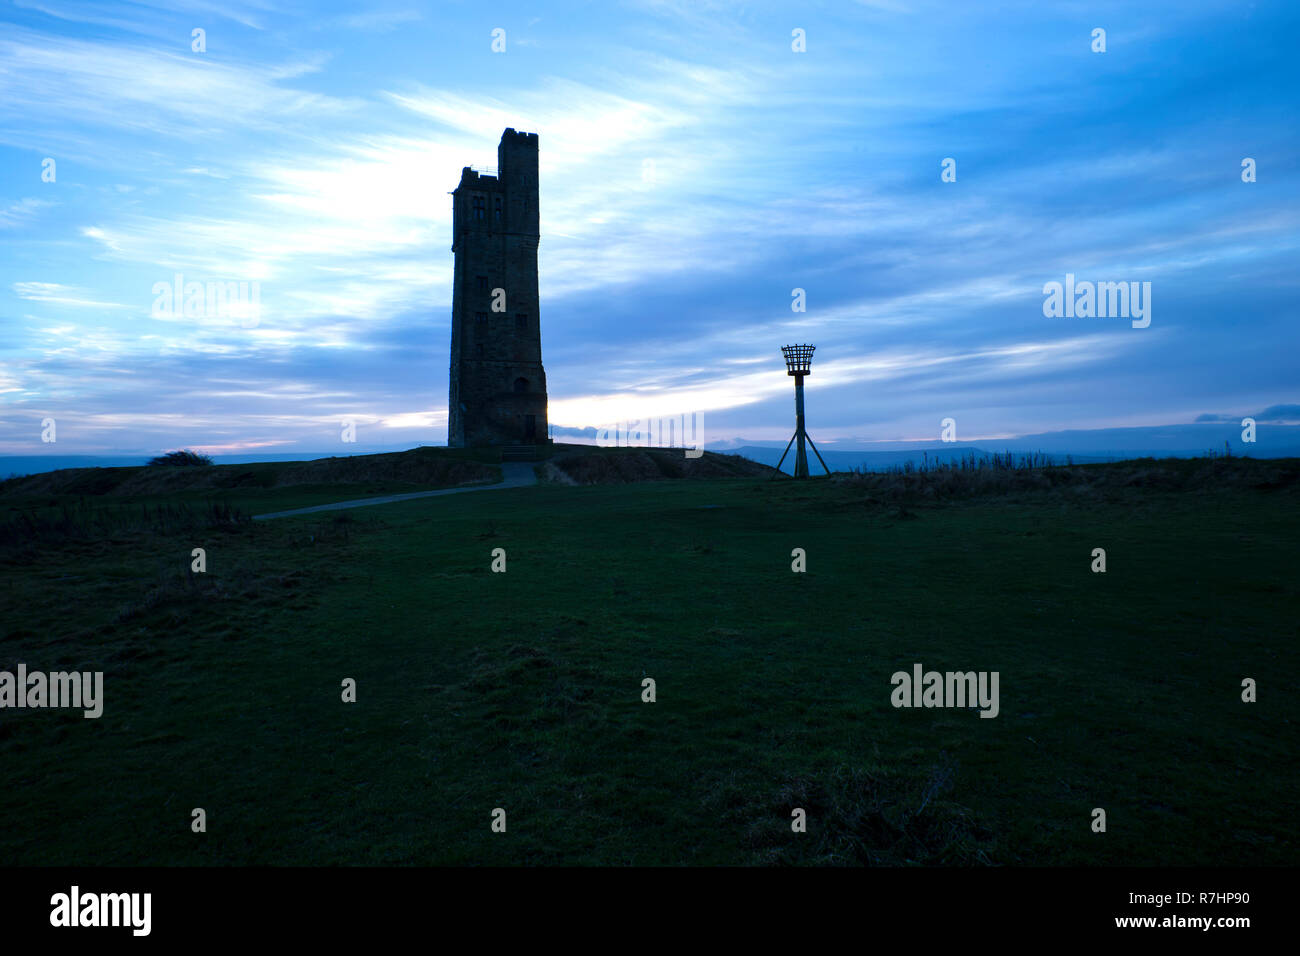 The Victoria Tower and millennium beacon on Castle Hill on a frosty day overlooking Huddersfield in Kirklees, West Yorkshire - Stock Image